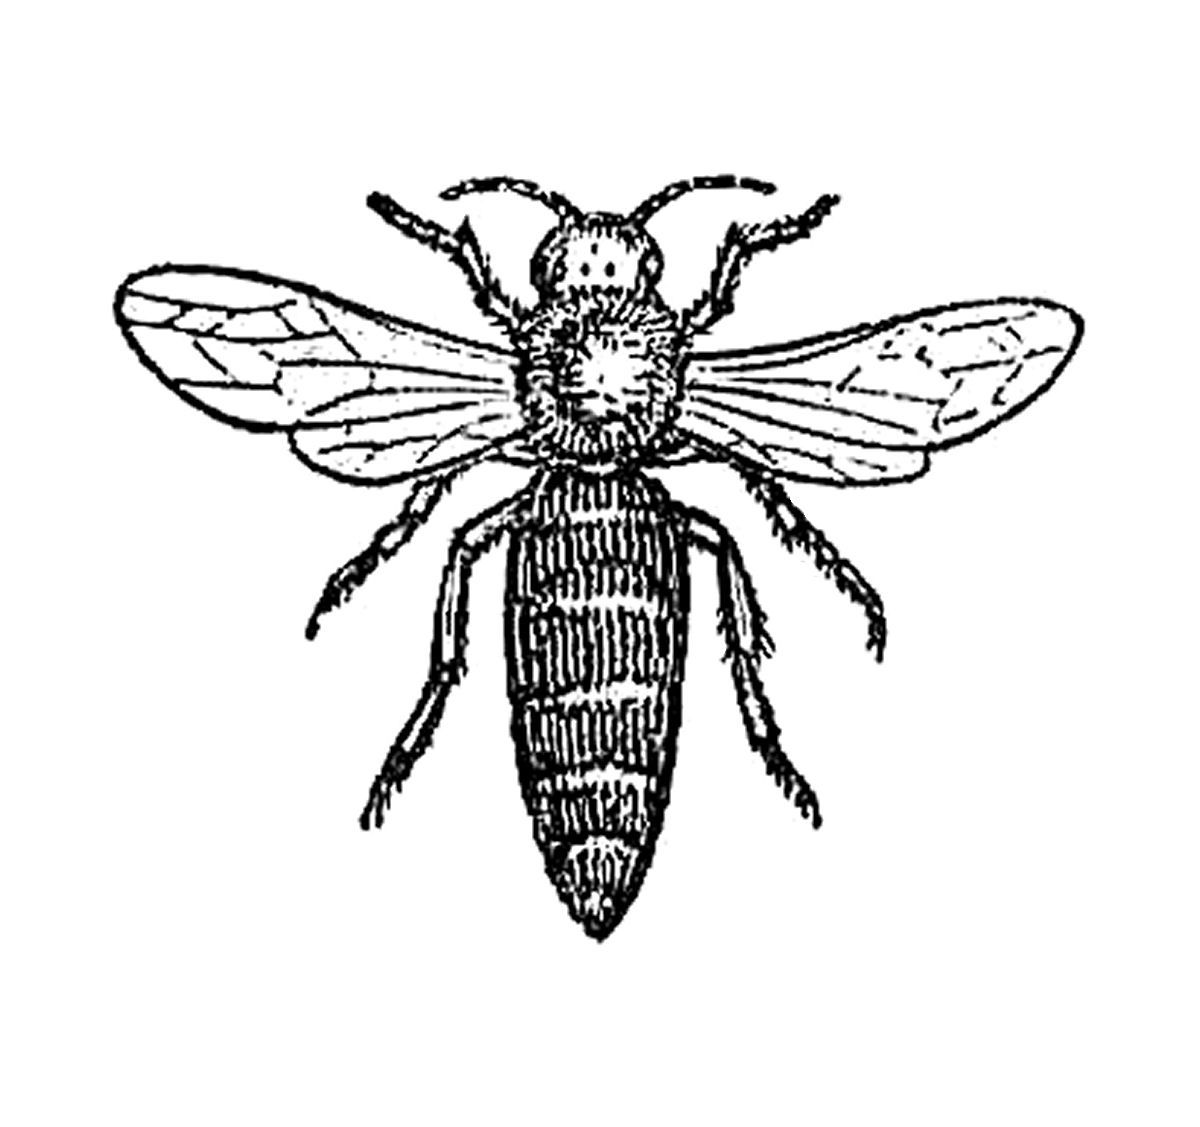 Insect Clip Art Black And White Home Dayasriolep